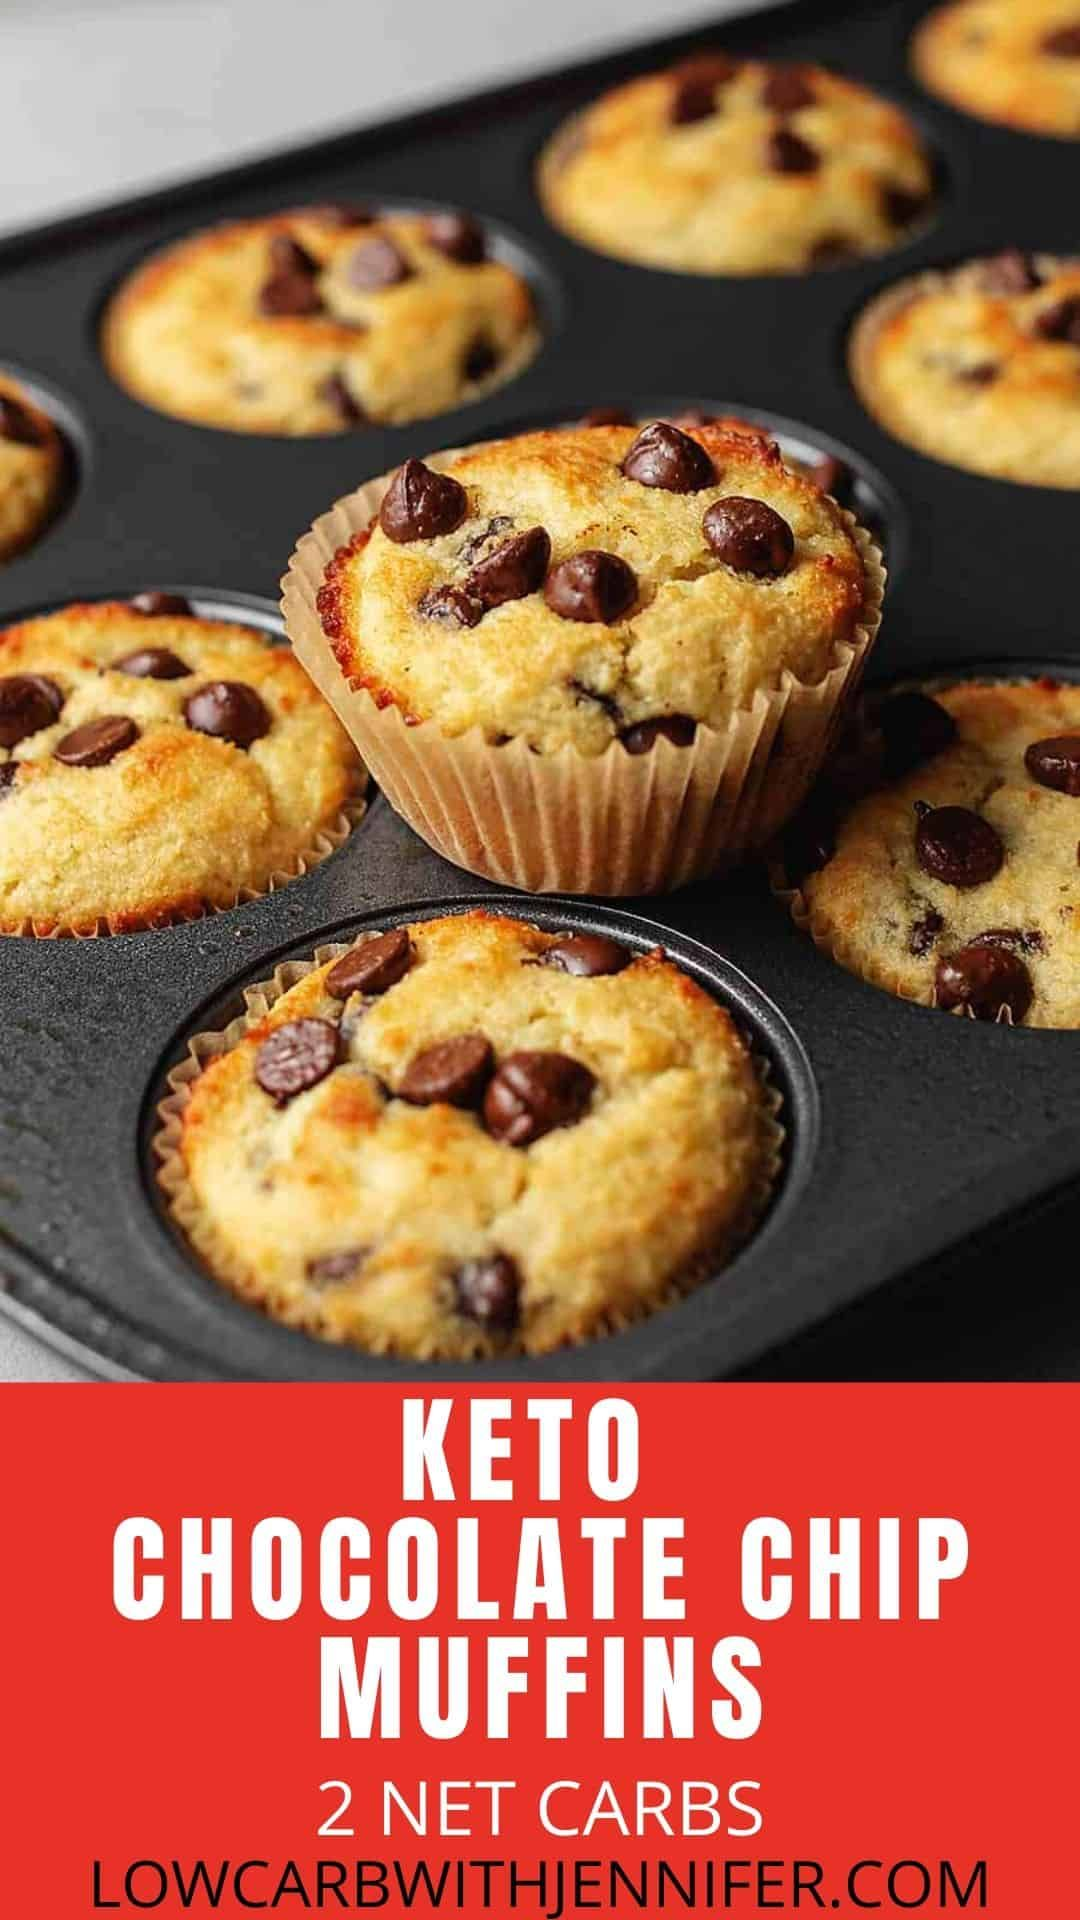 Keto Chocolate Chip Muffins • Low Carb with Jennifer